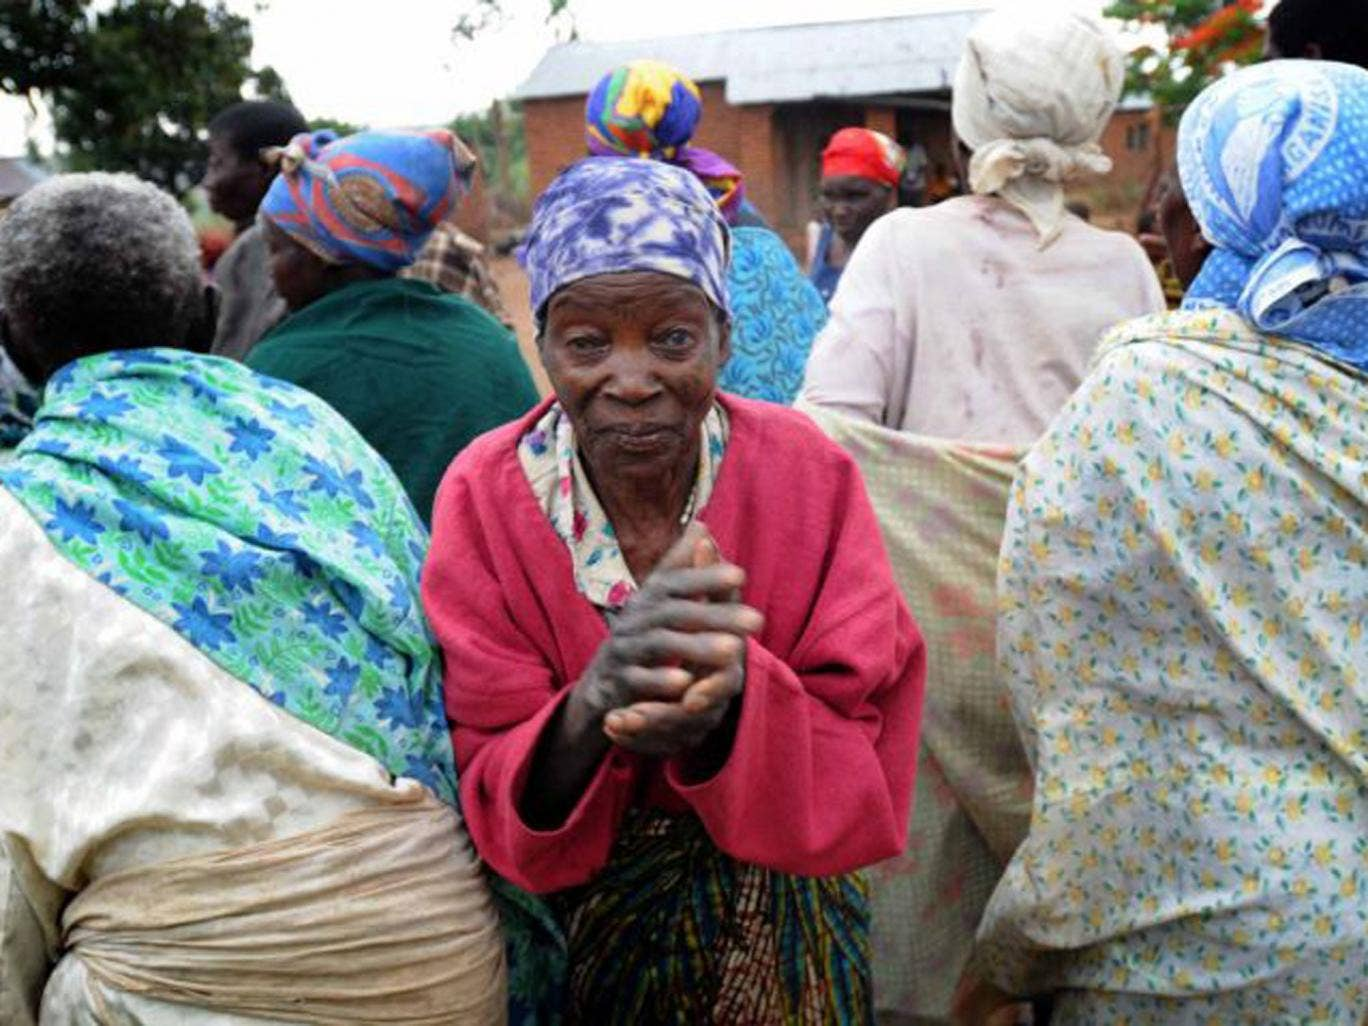 Elderly women in Kasarika, a village with one of the highest rates of HIV in Malawi